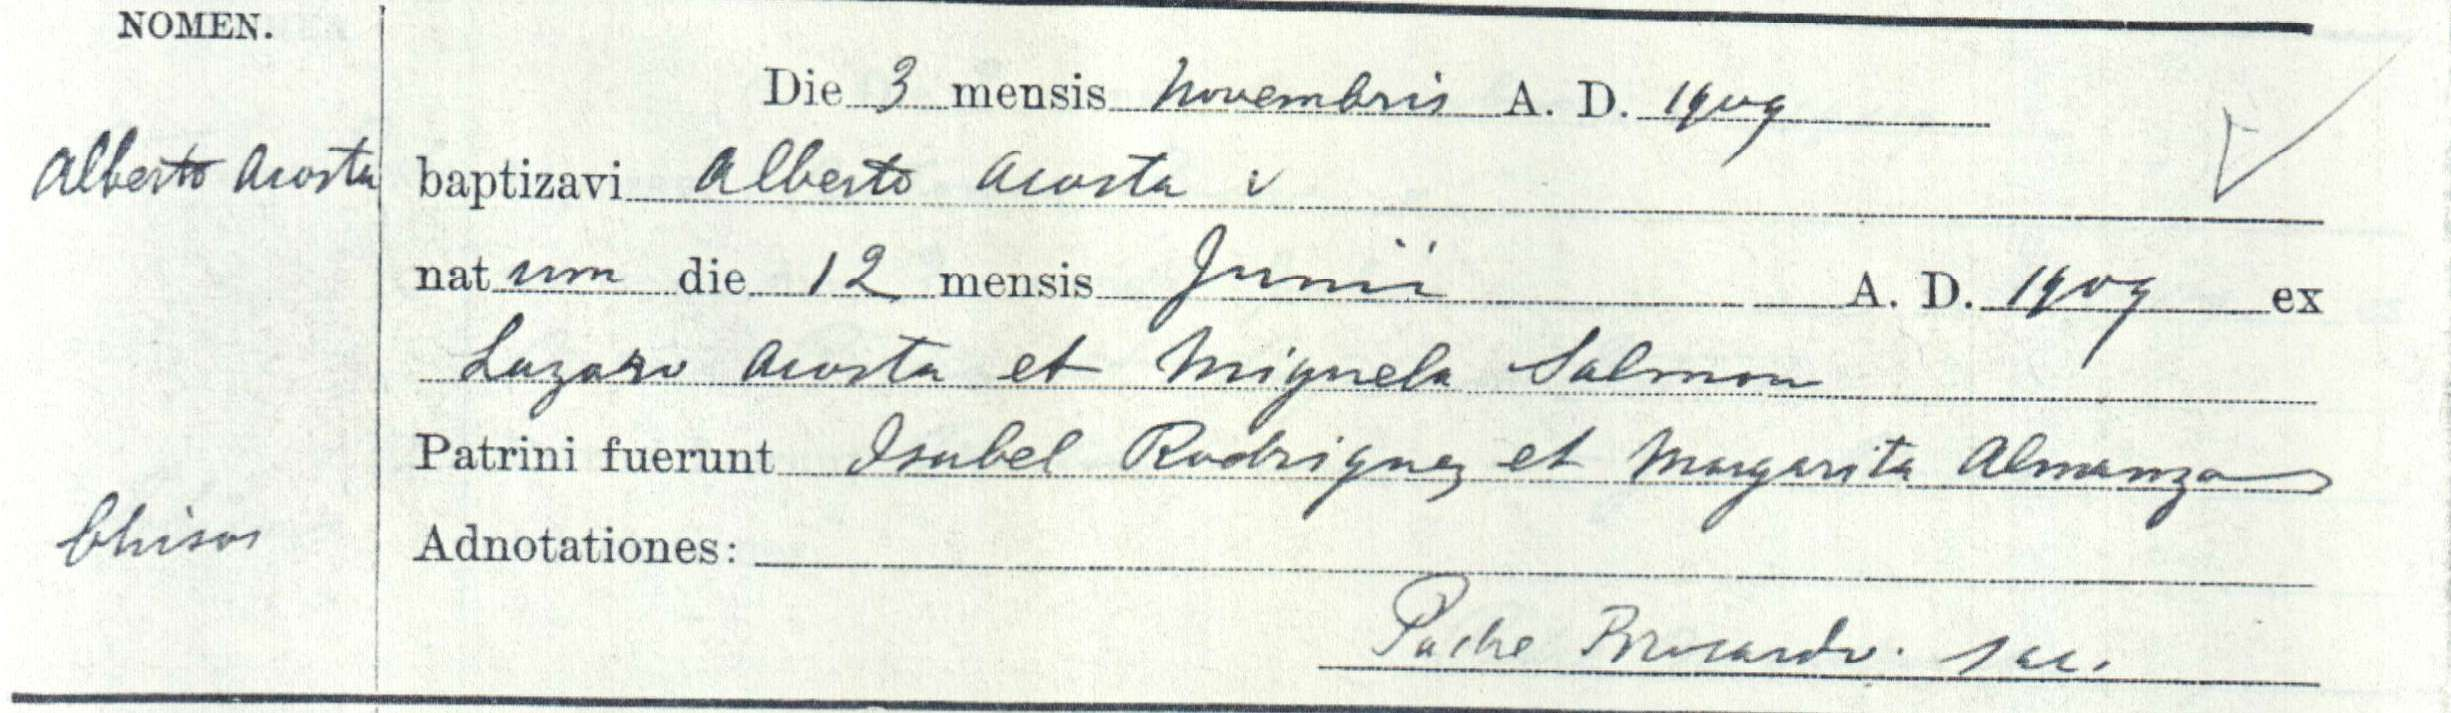 Acostaalbertog 2 cresencio5 acosta was born in september 1849 in ojinaga mxico he married beatrice nez daughter of francisco nez and paula heredia aiddatafo Gallery